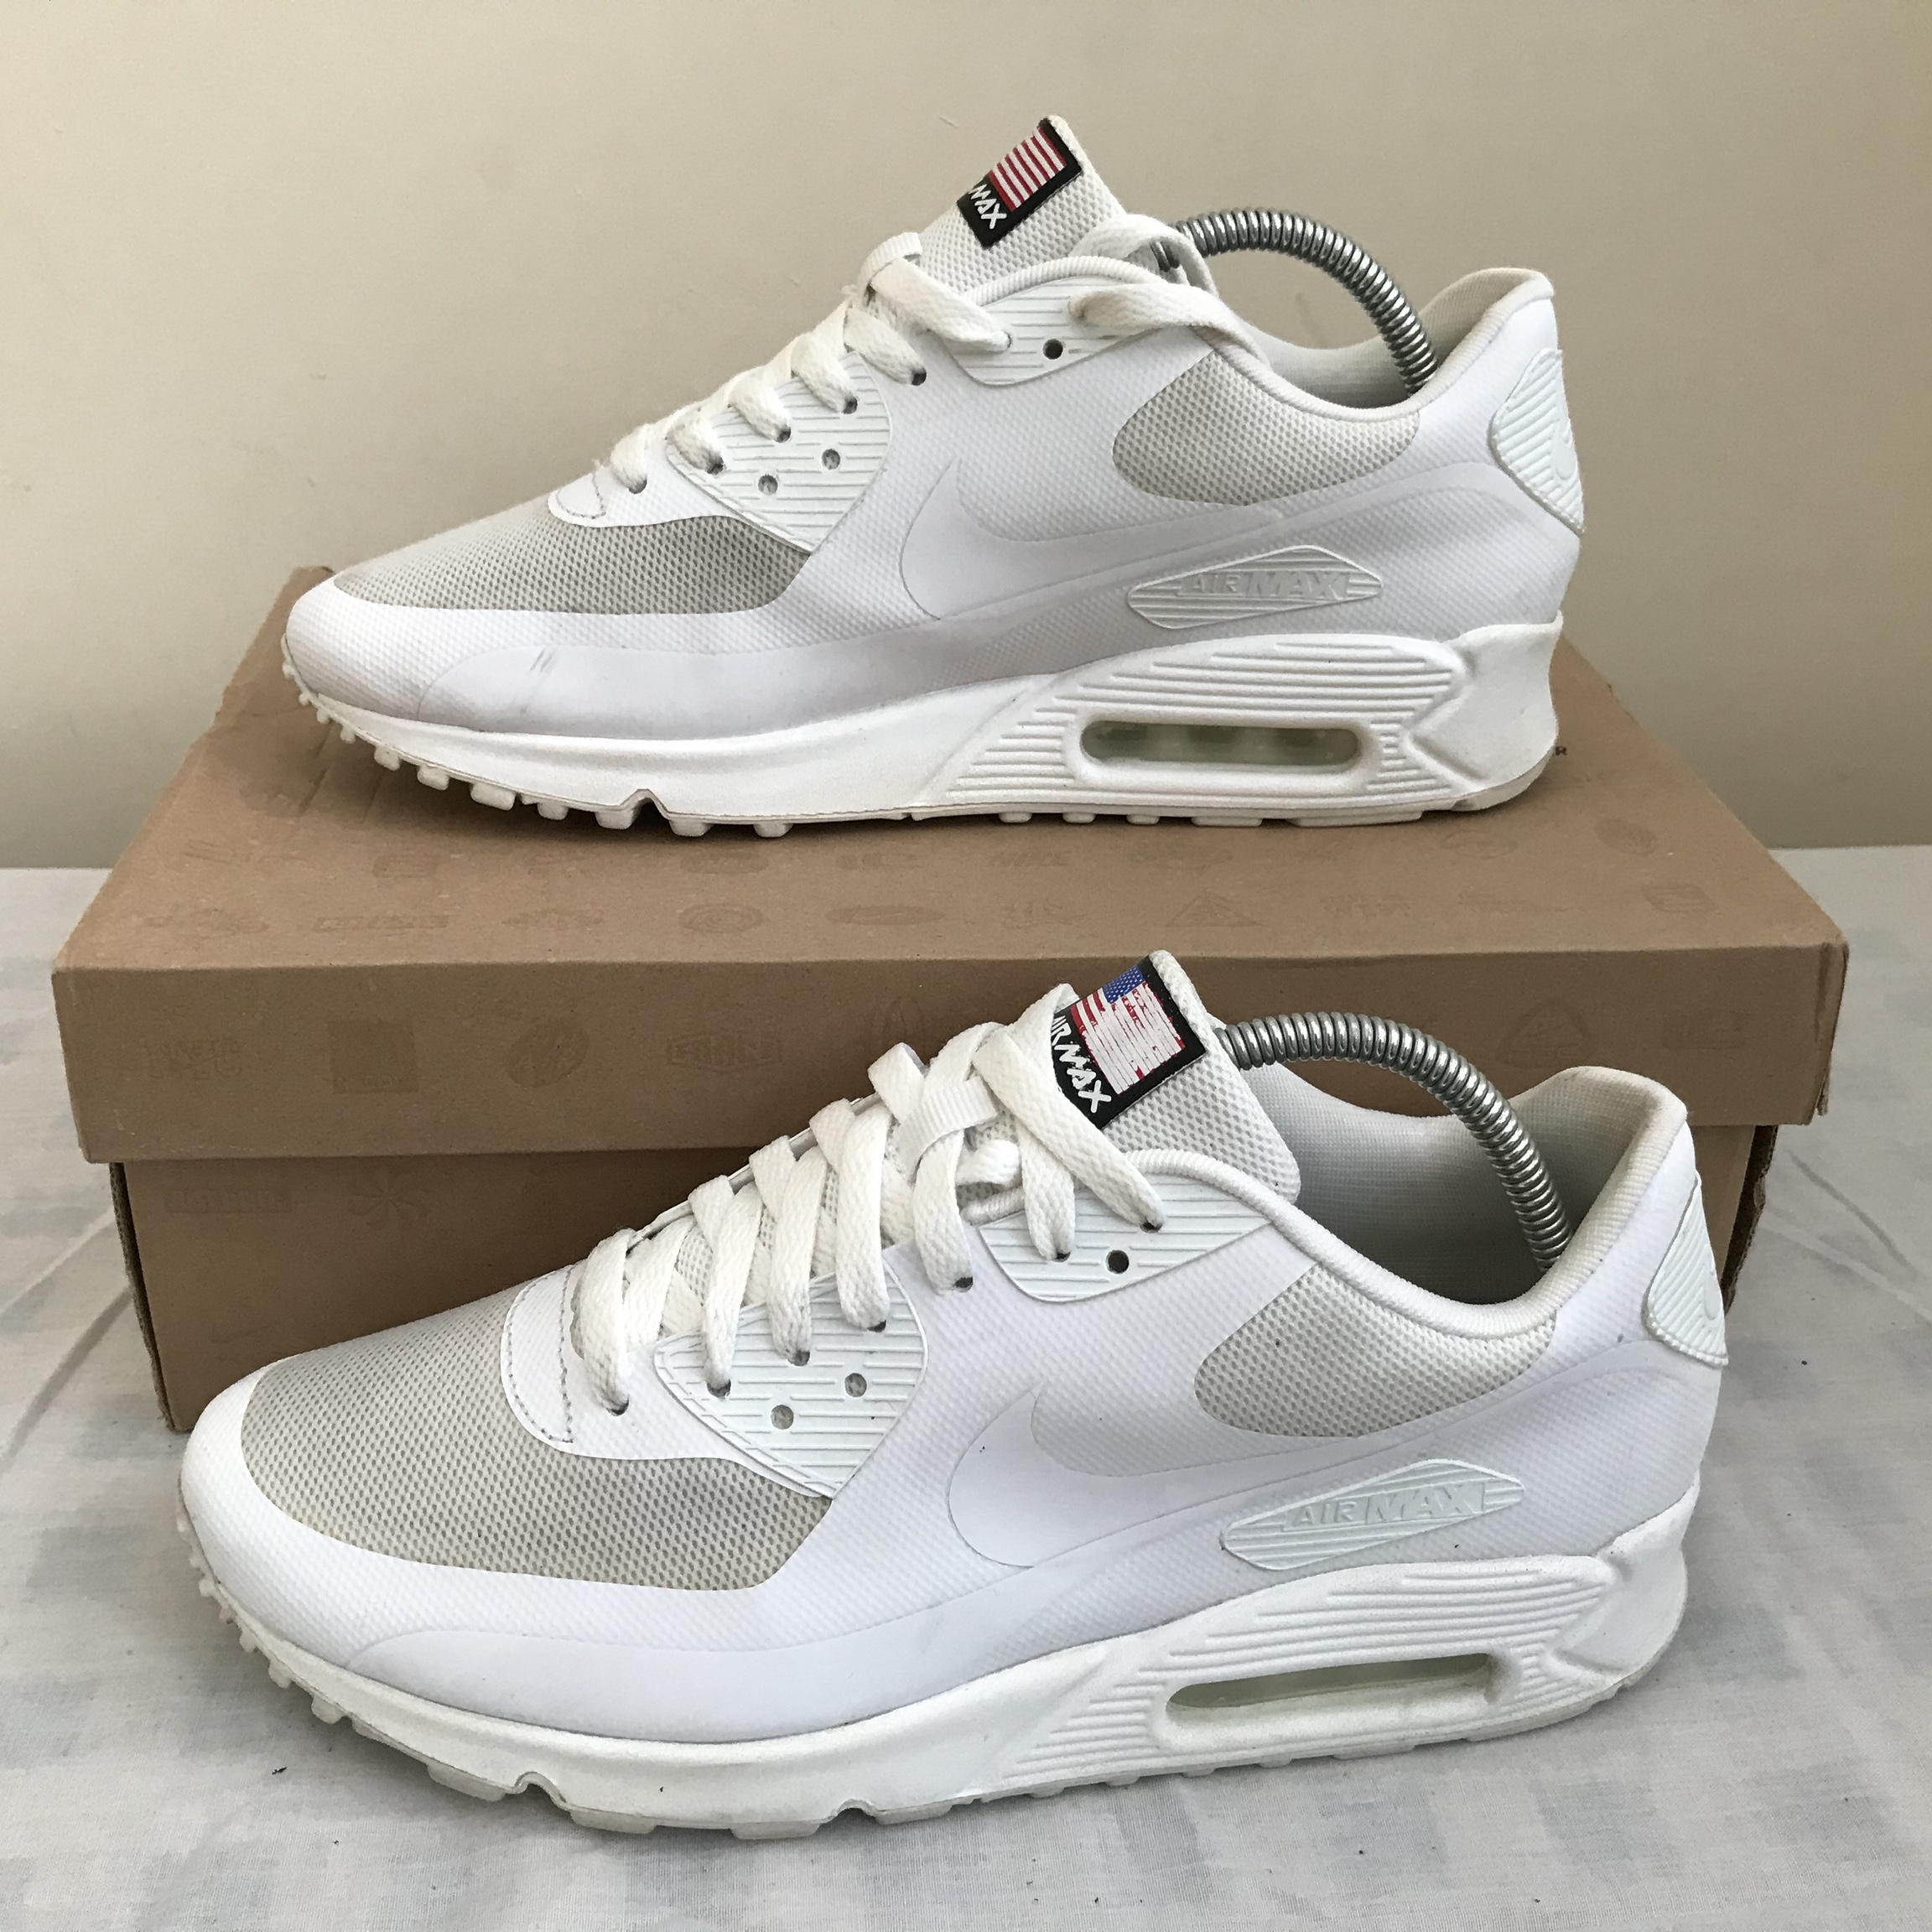 Nike Air Max 90 Independence Day White izabo.co.uk